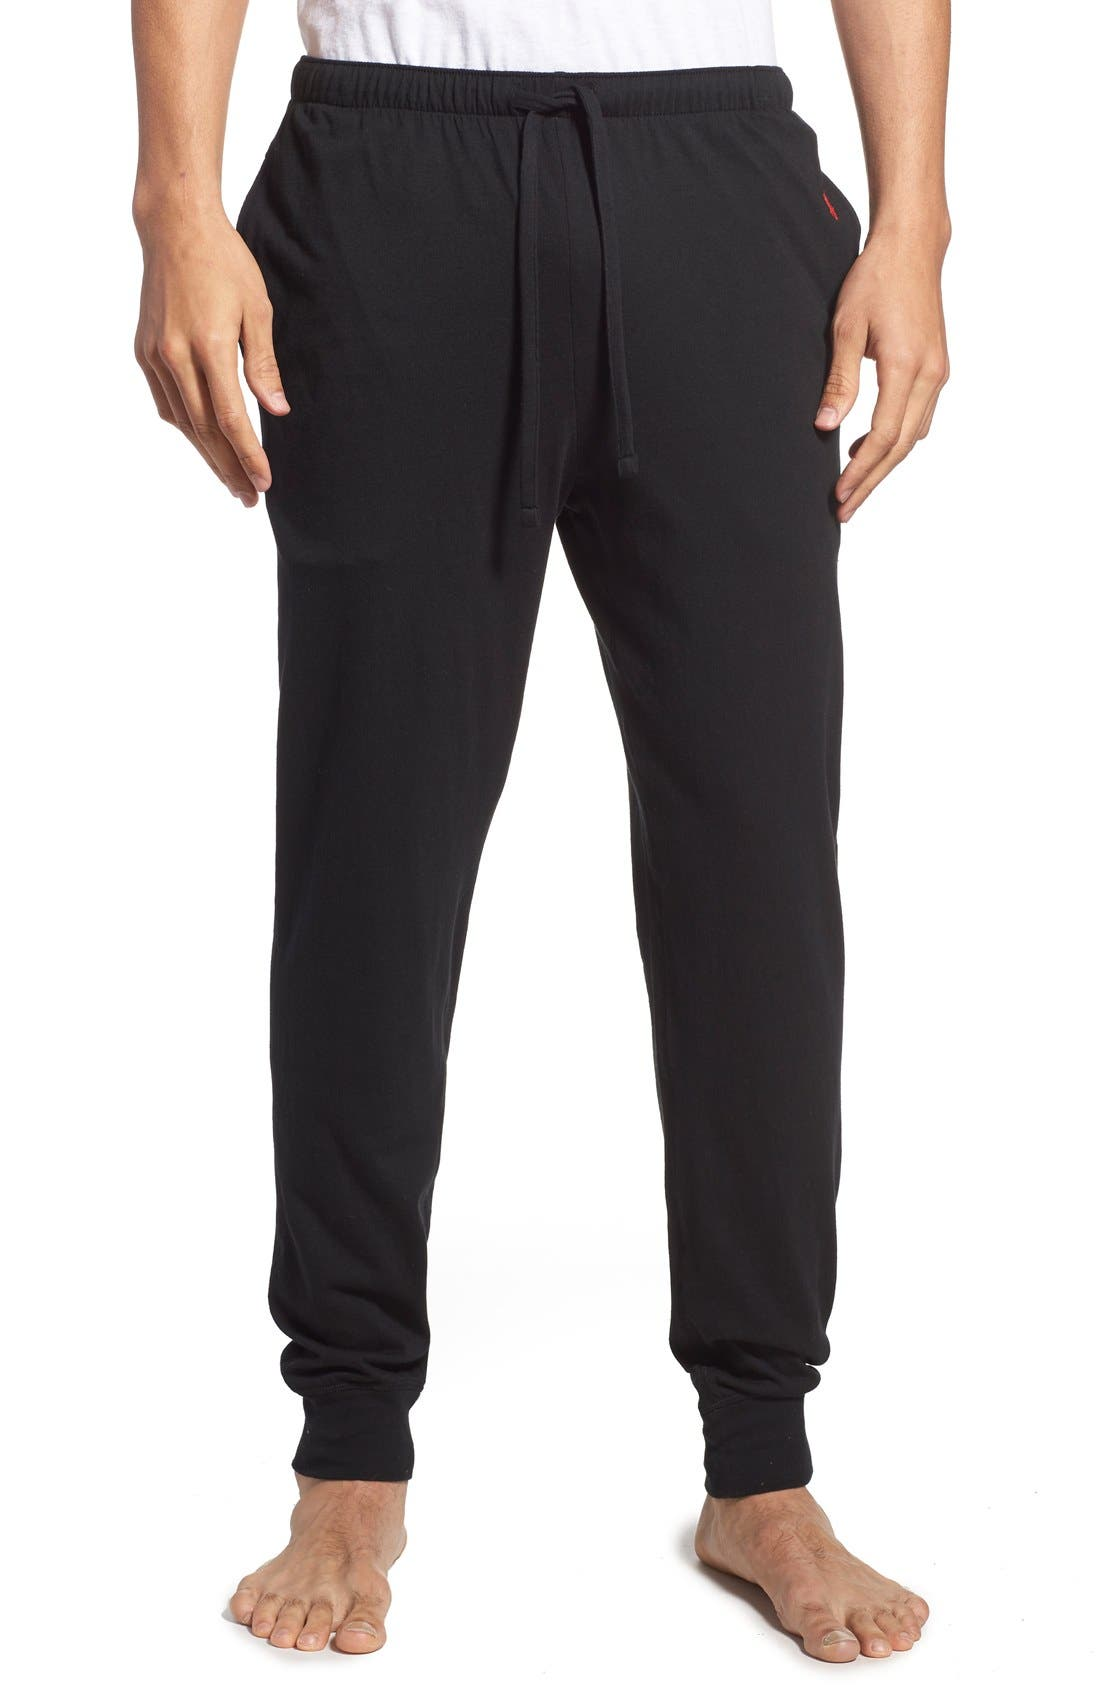 Relaxed Fit Cotton Knit Lounge Jogger Pants,                         Main,                         color, Black